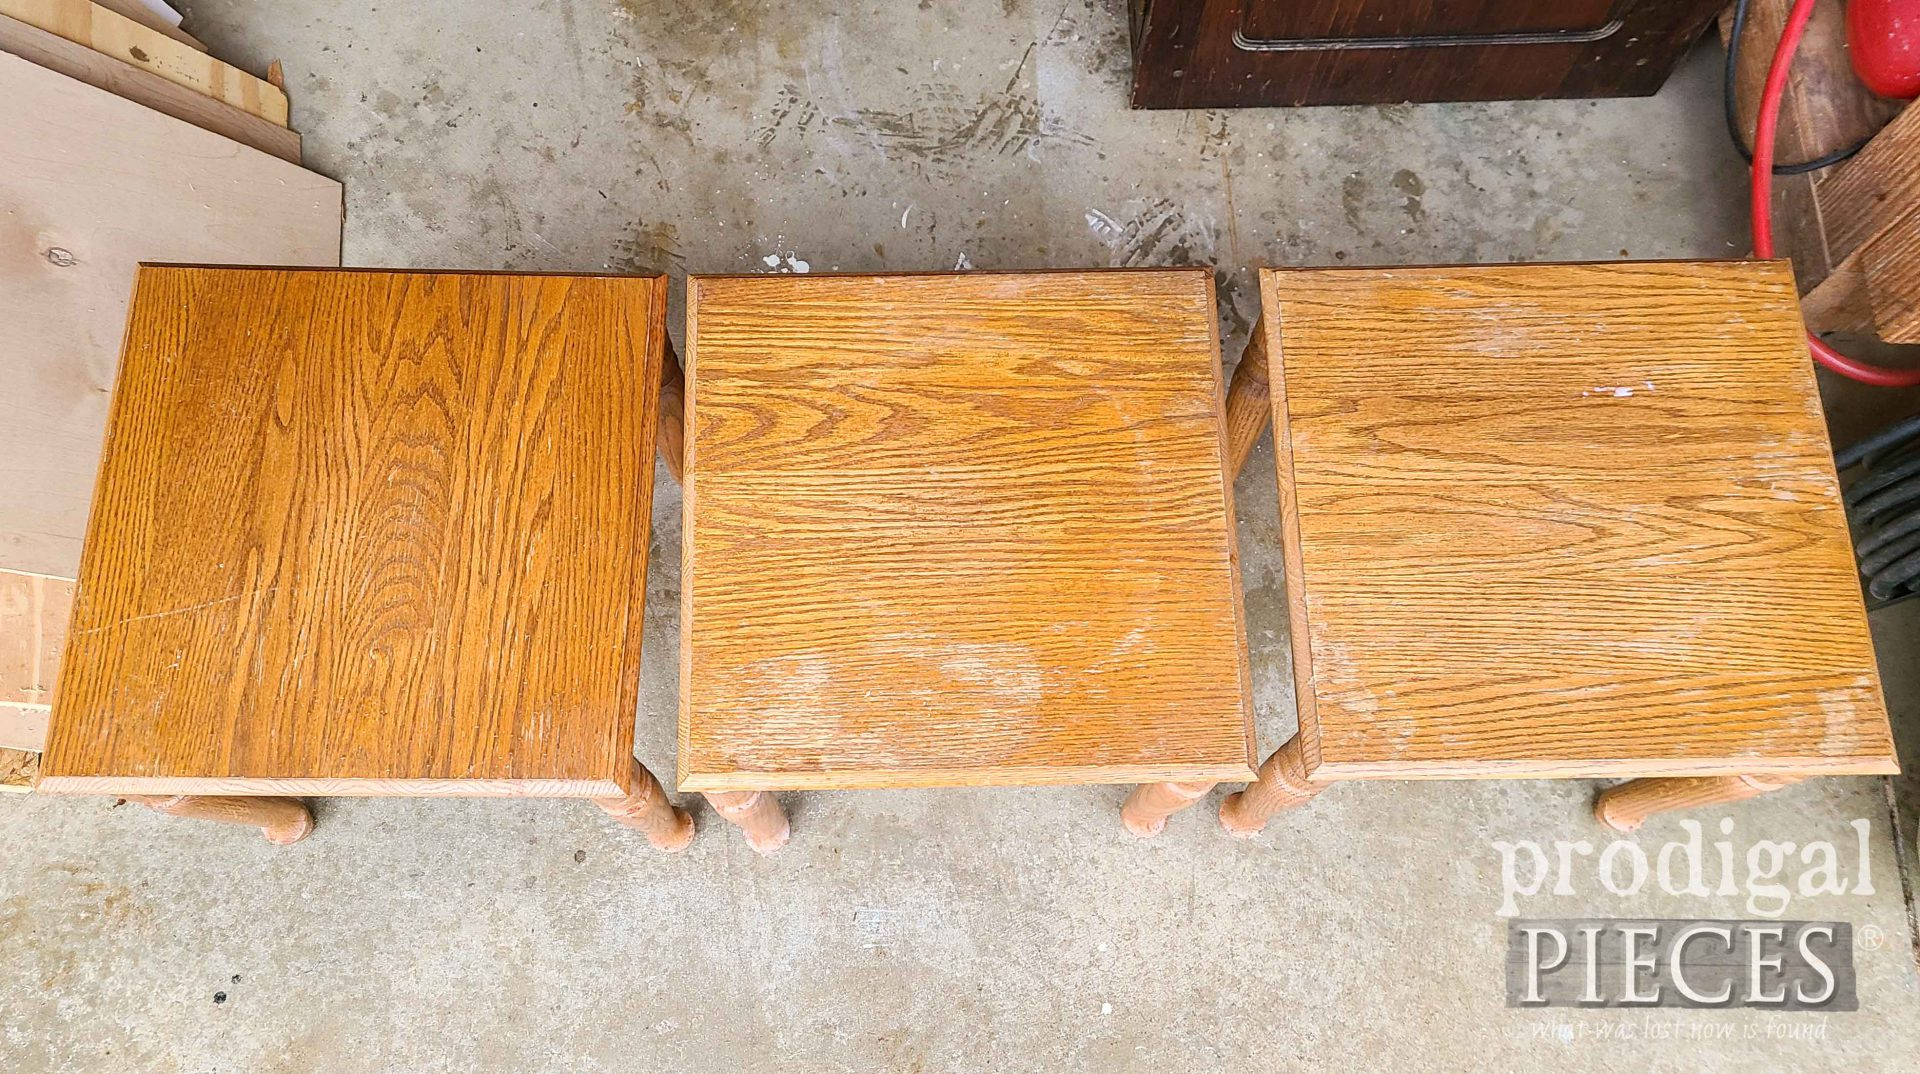 Vintage Stacking Table Tops | Prodigal Pieces | prodigalpieces.com